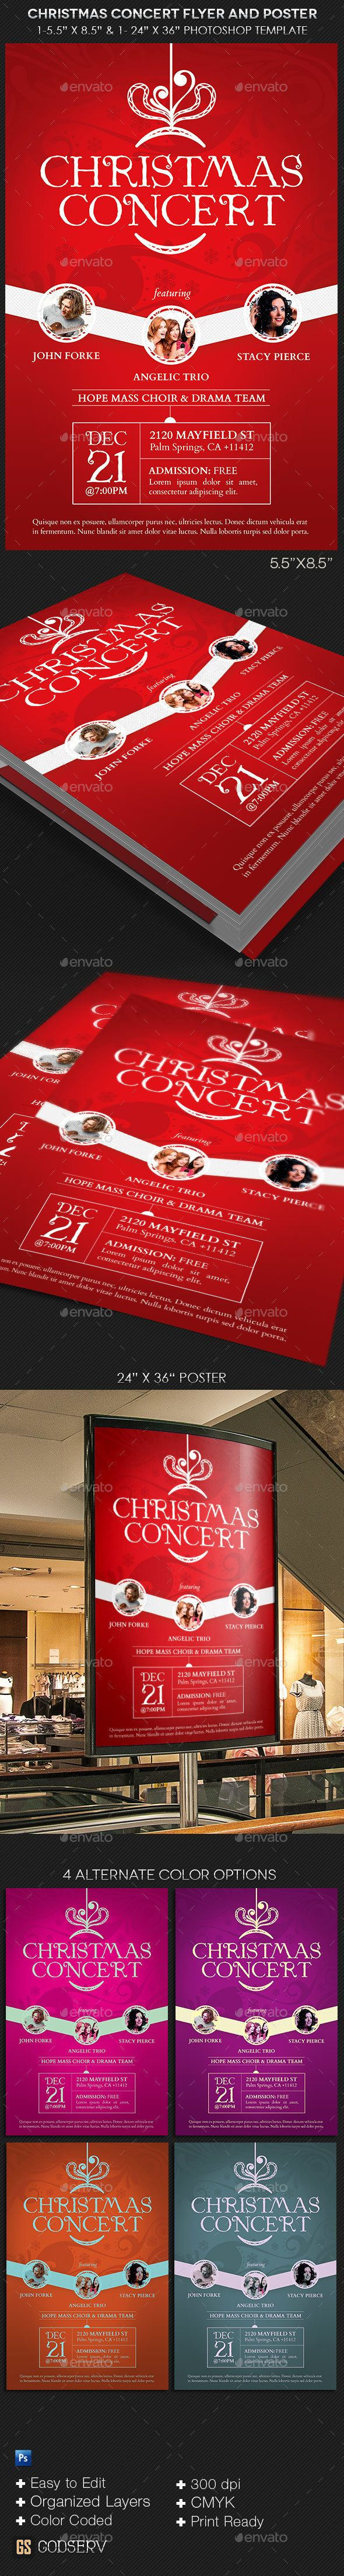 Christmas Concert Flyer Poster Template — Photoshop PSD #sermon #white • Available here → https://graphicriver.net/item/christmas-concert-flyer-poster-template/13526923?ref=pxcr